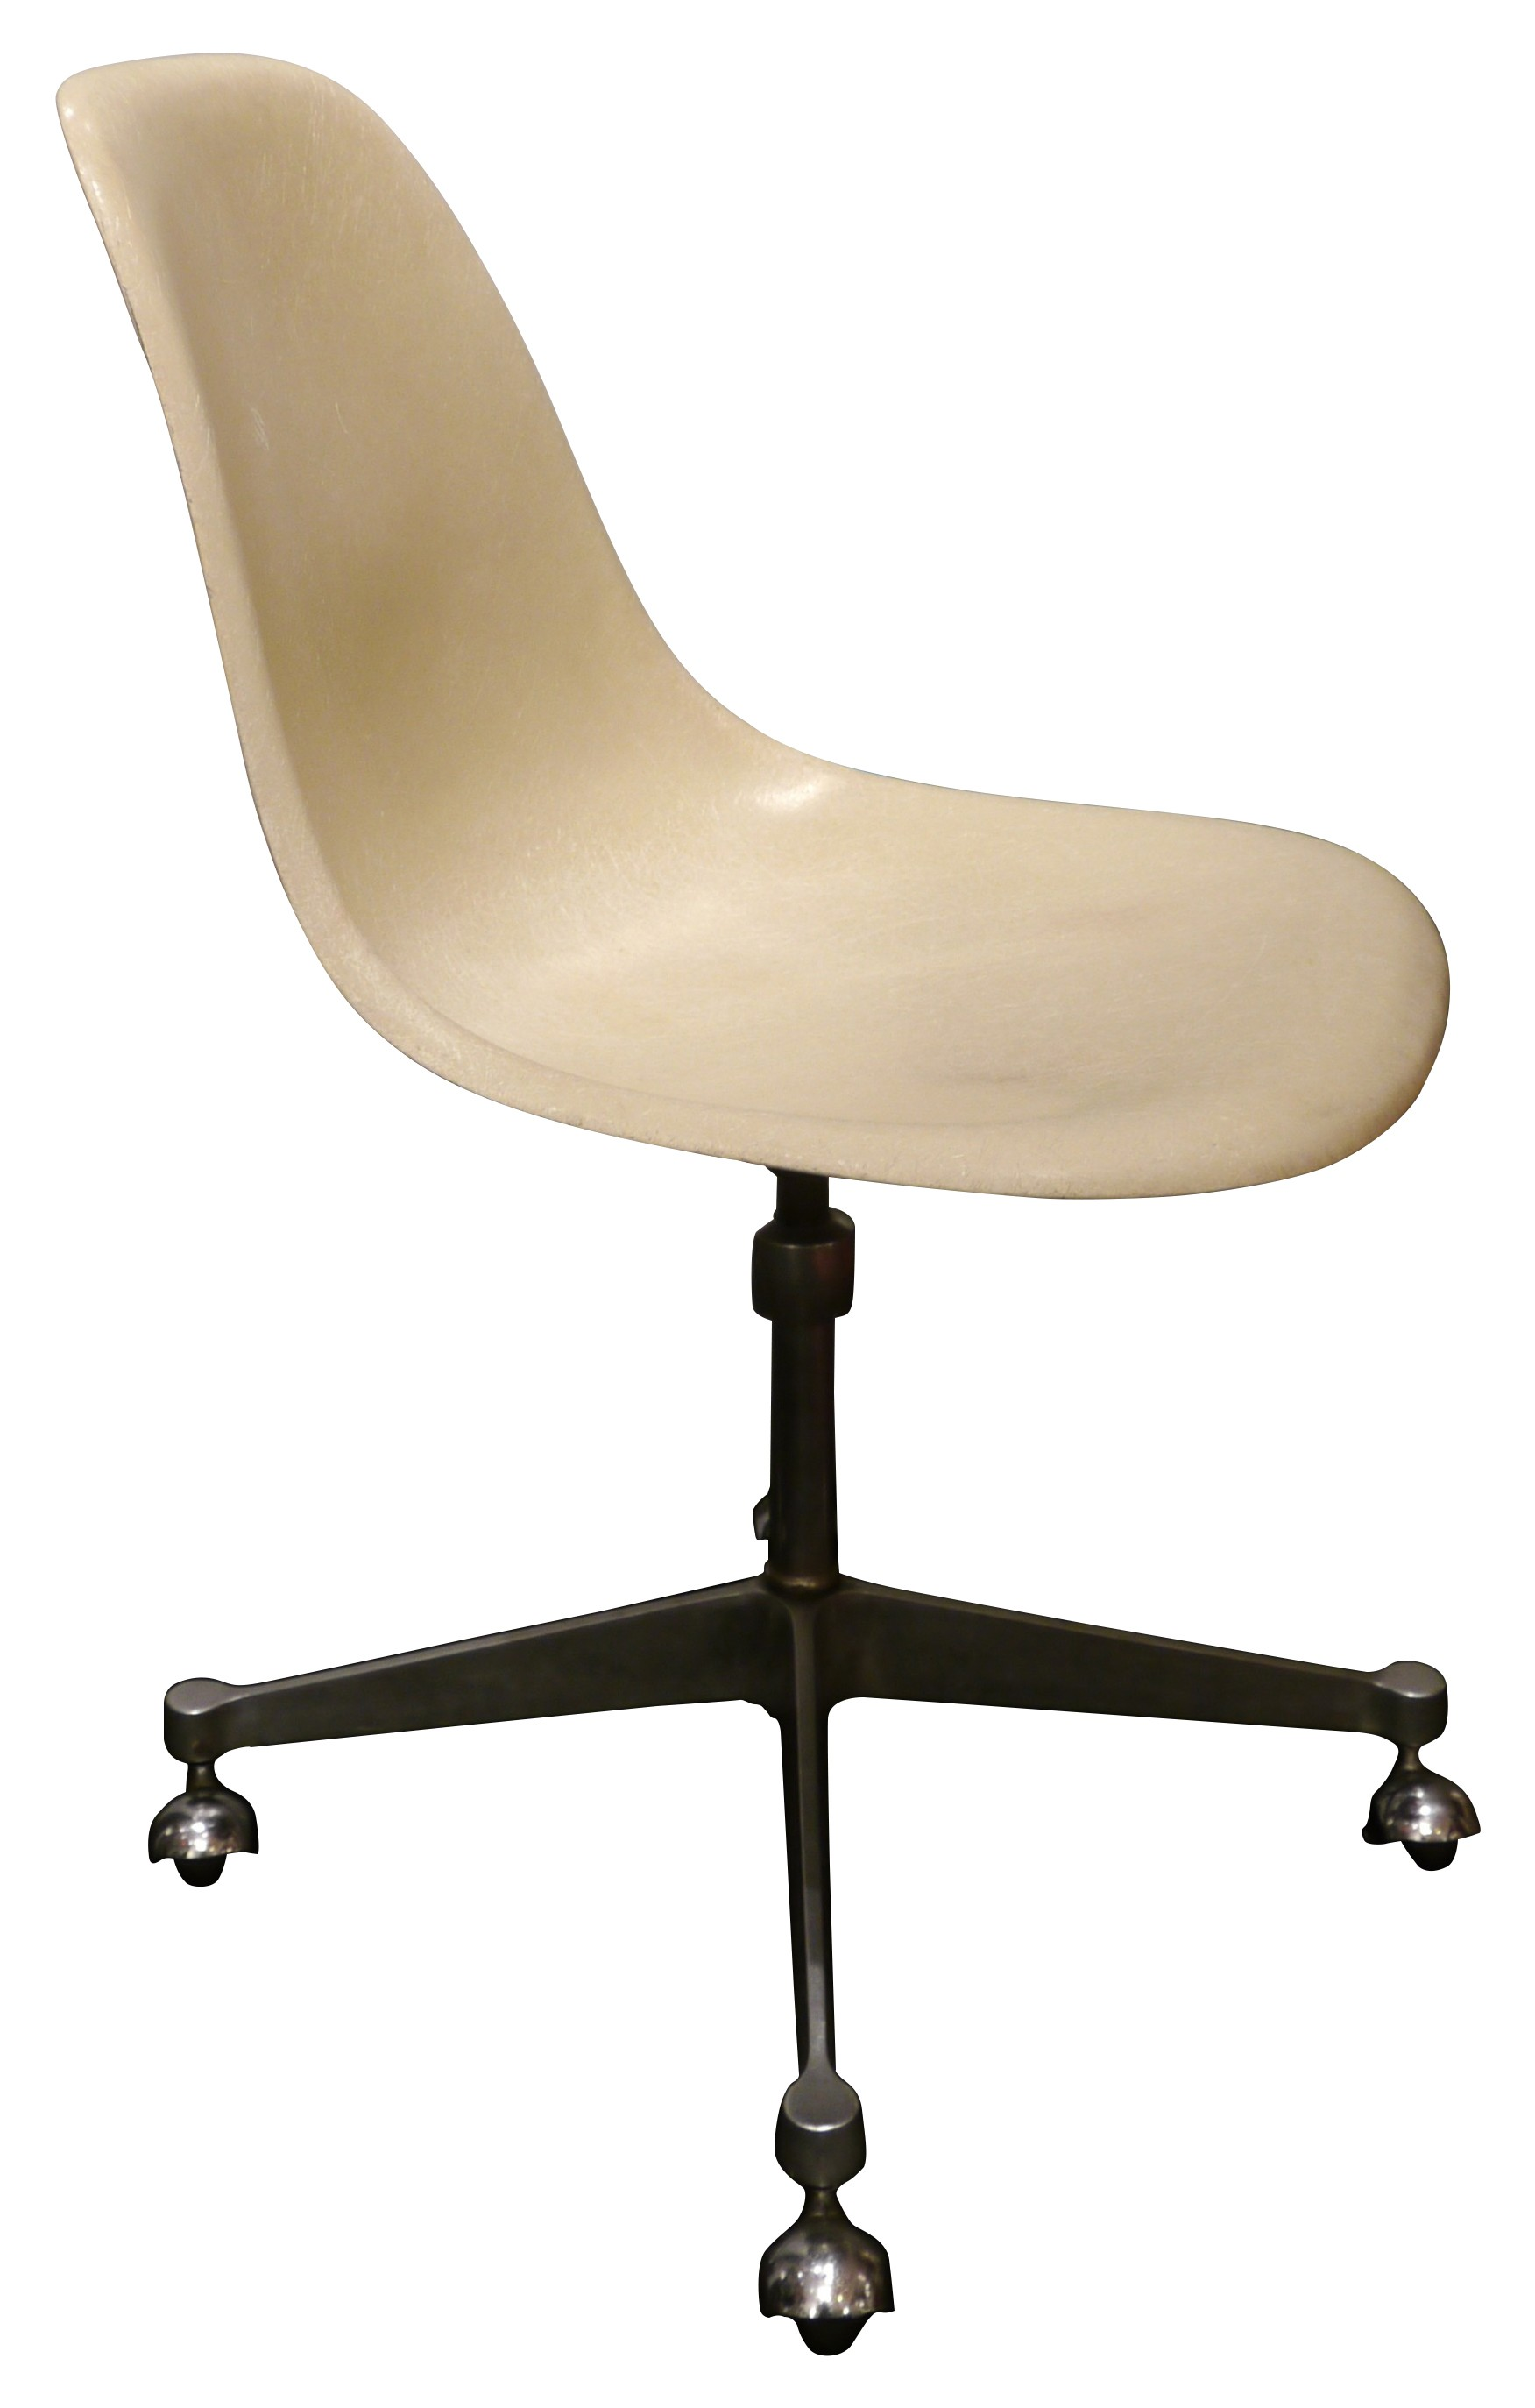 Vintage desk chair with wheels Charles EAMES 70 Design Market